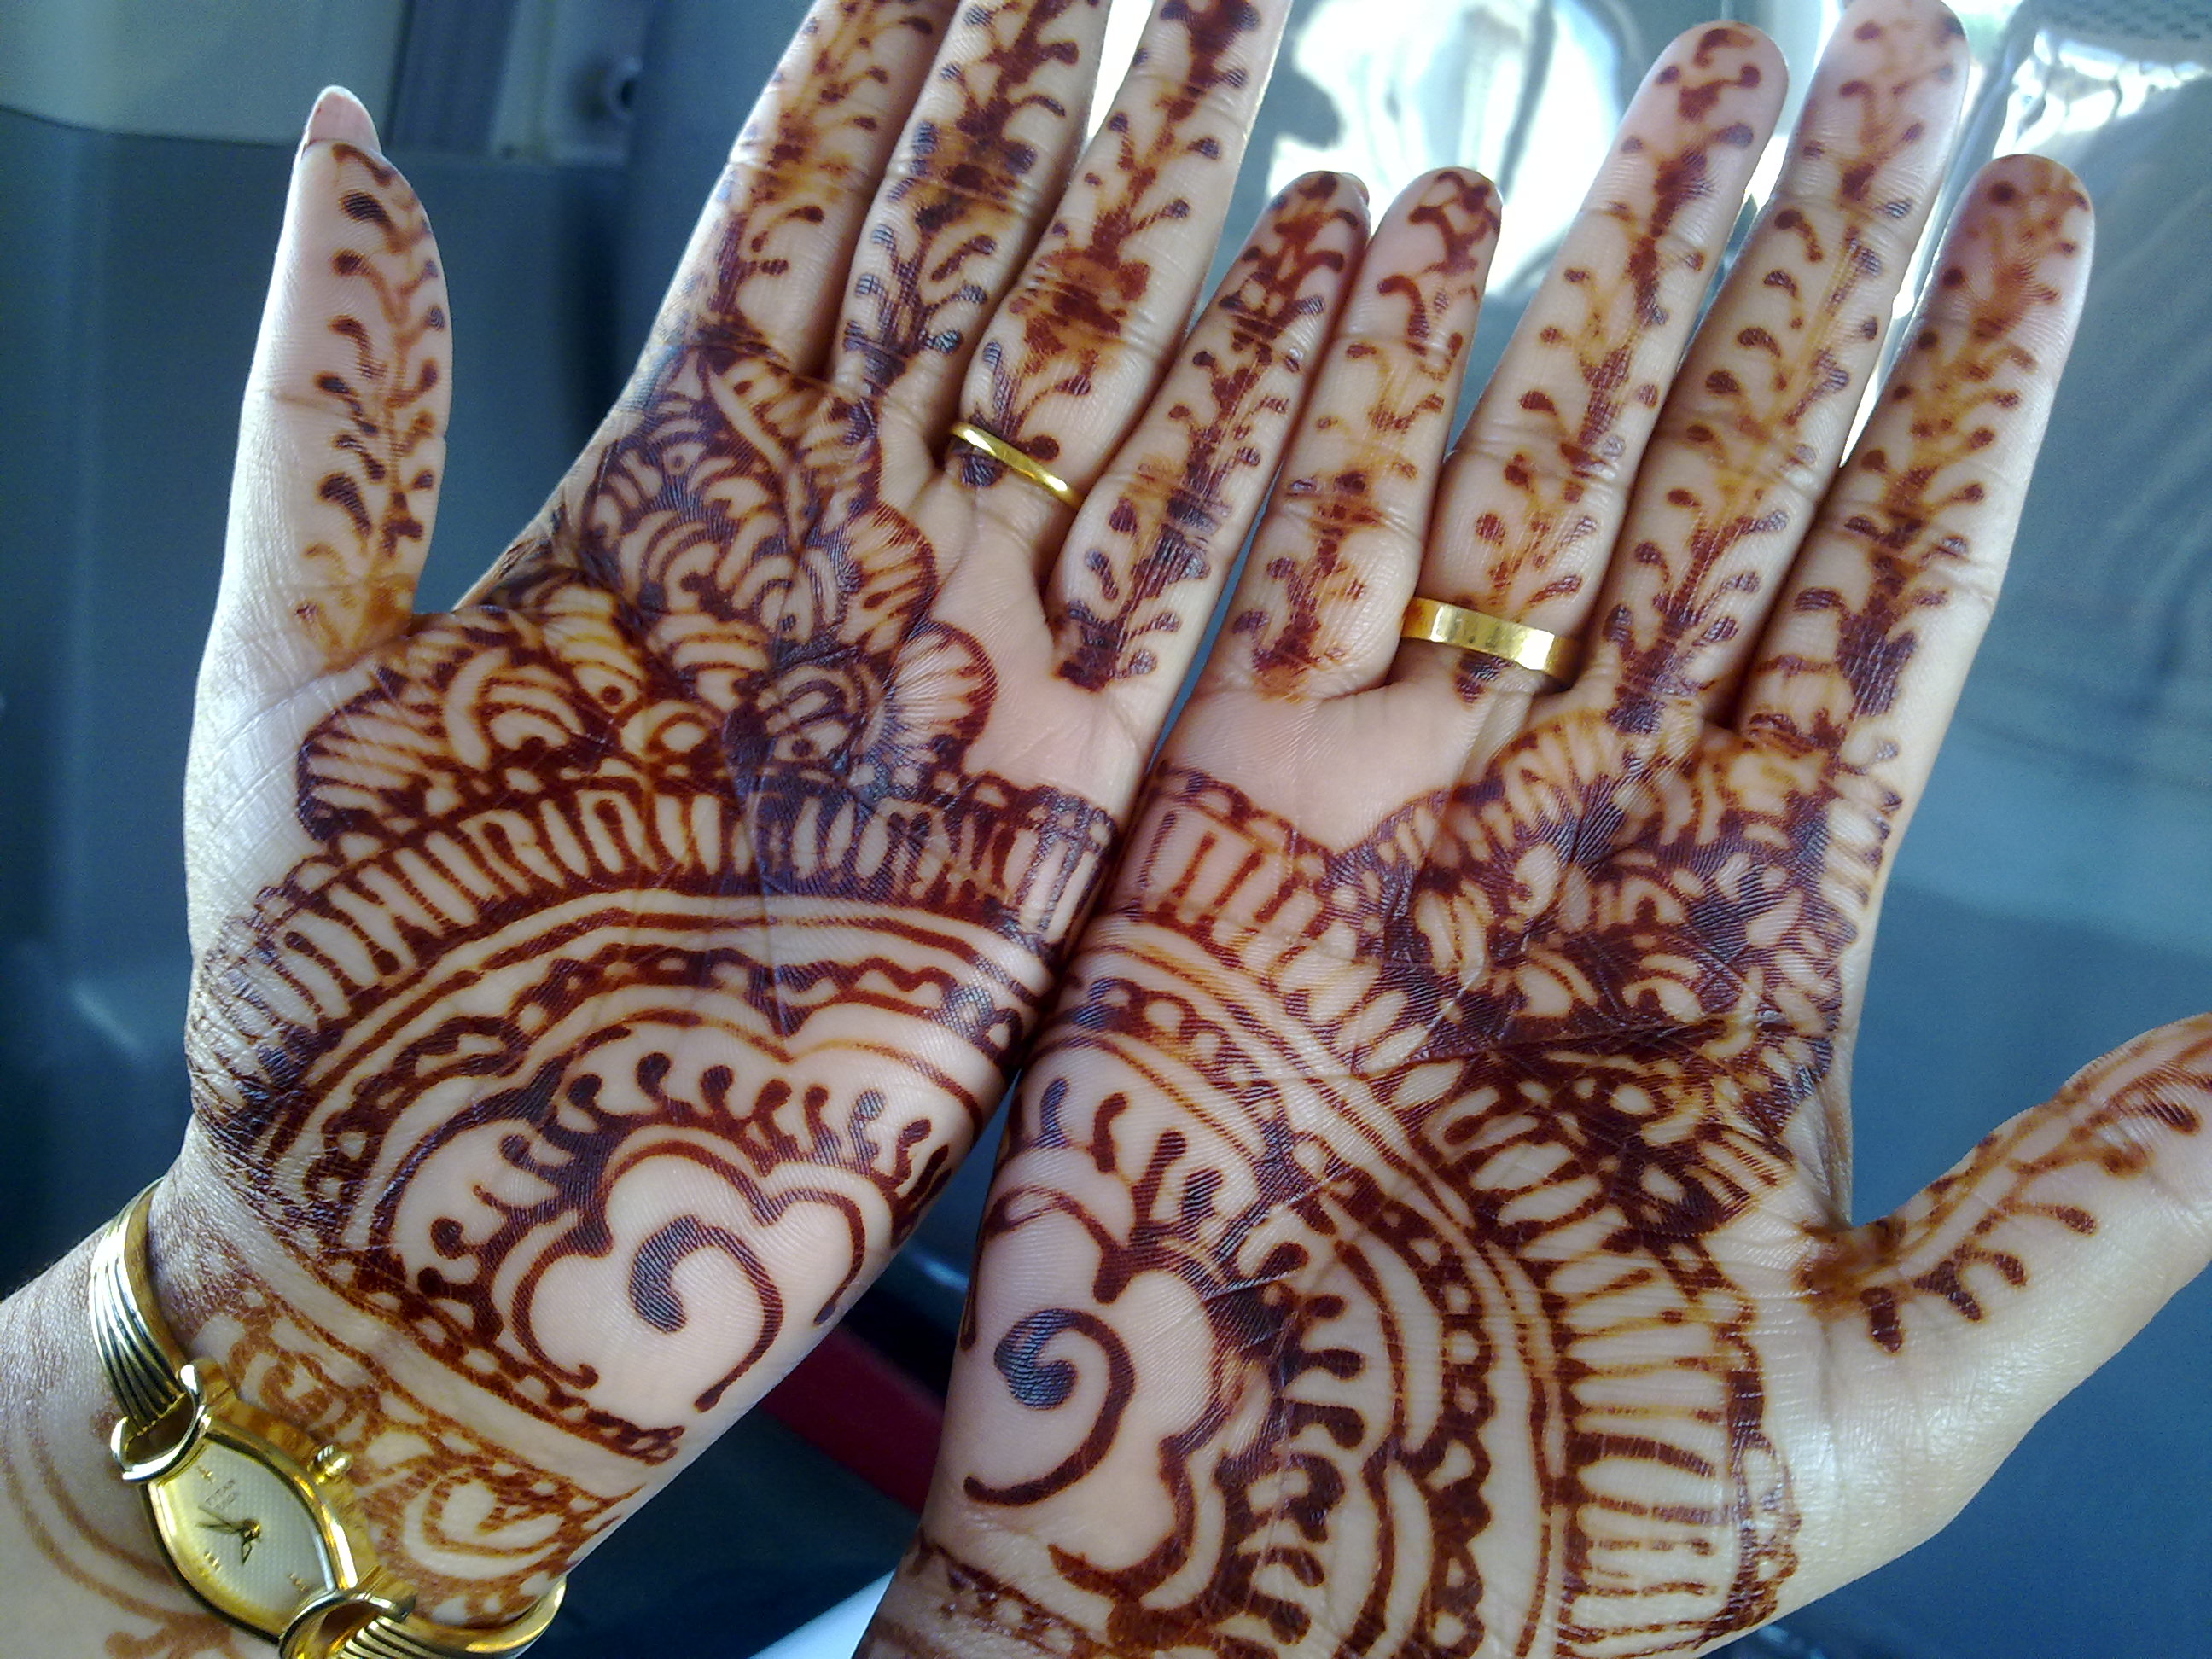 Henna Tattoo For Indian Wedding: Henna Tattoo: A Wedding Tradition